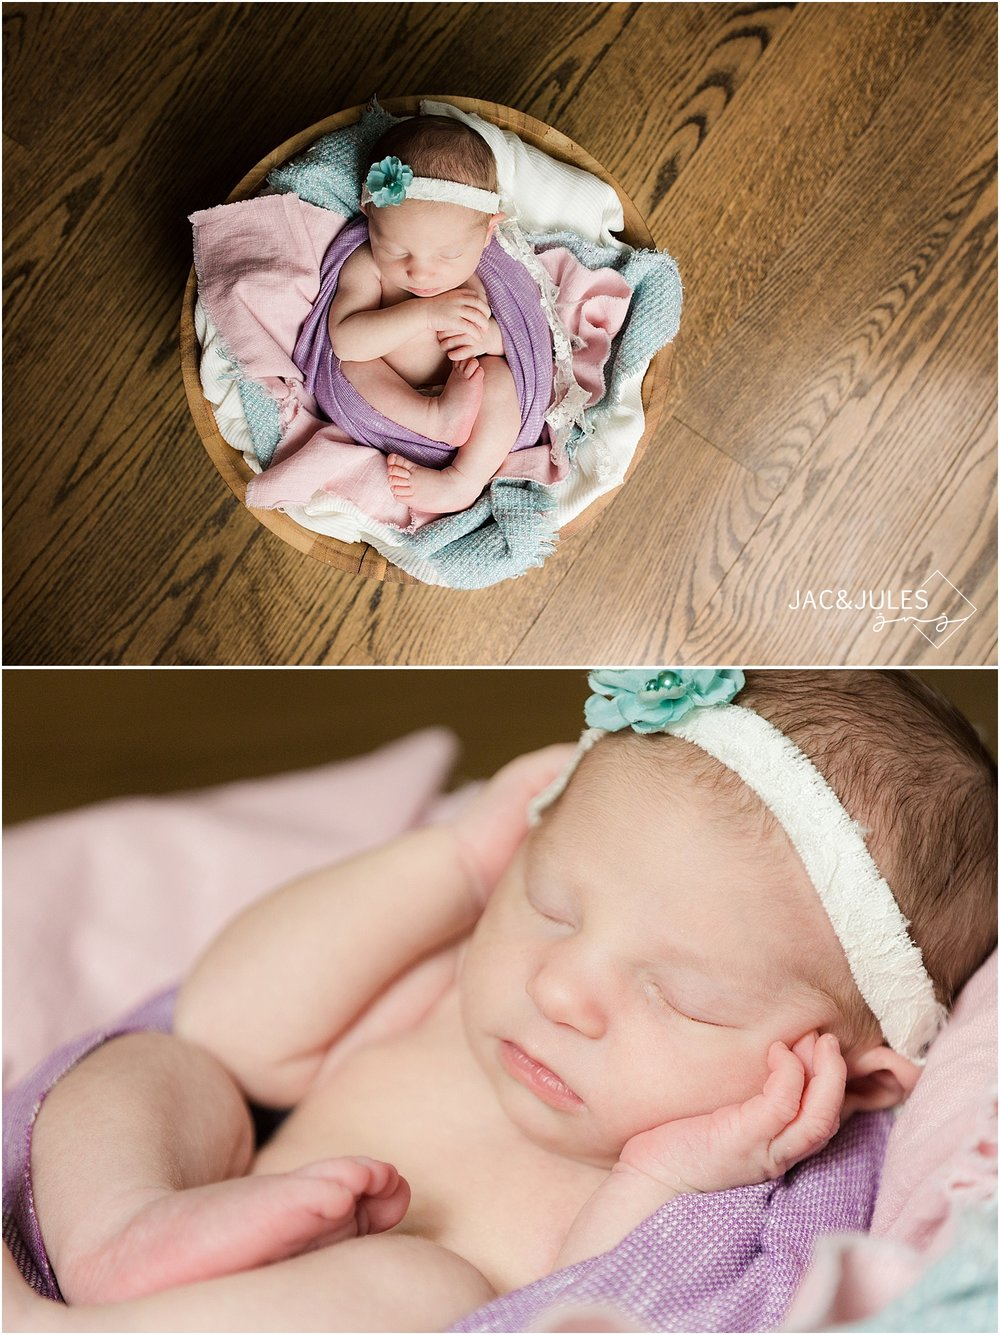 jacnjules photograph a newborn baby girl in a bucket in Toms River, NJ